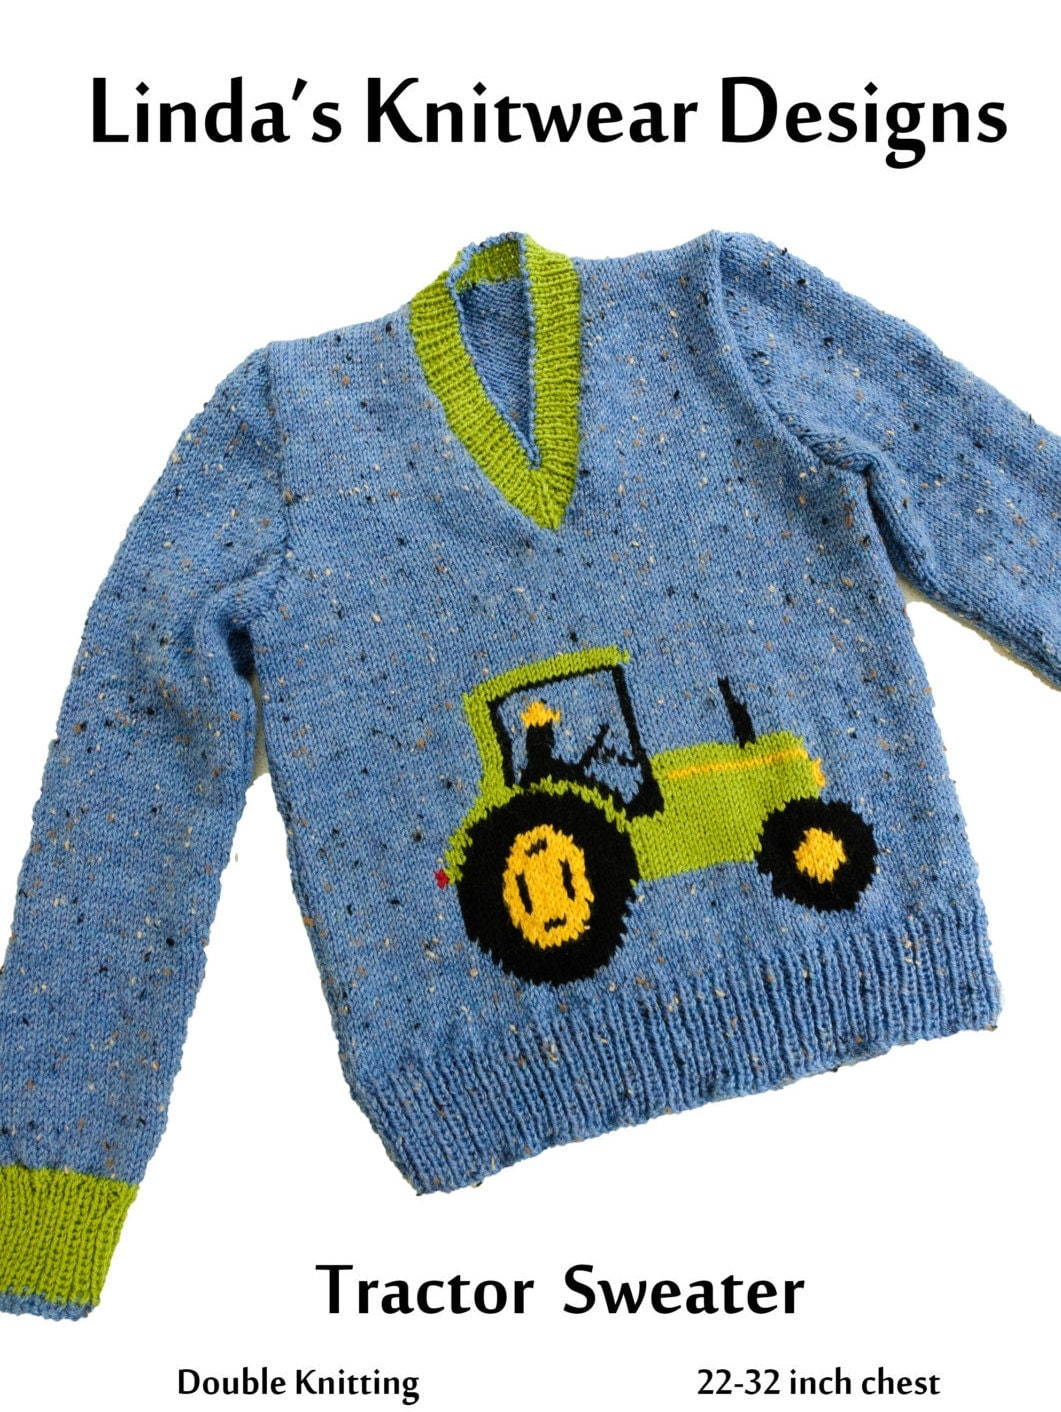 Childrens Tractor Motif sweater knitting pattern, sizes 22 to 32 inch ch...